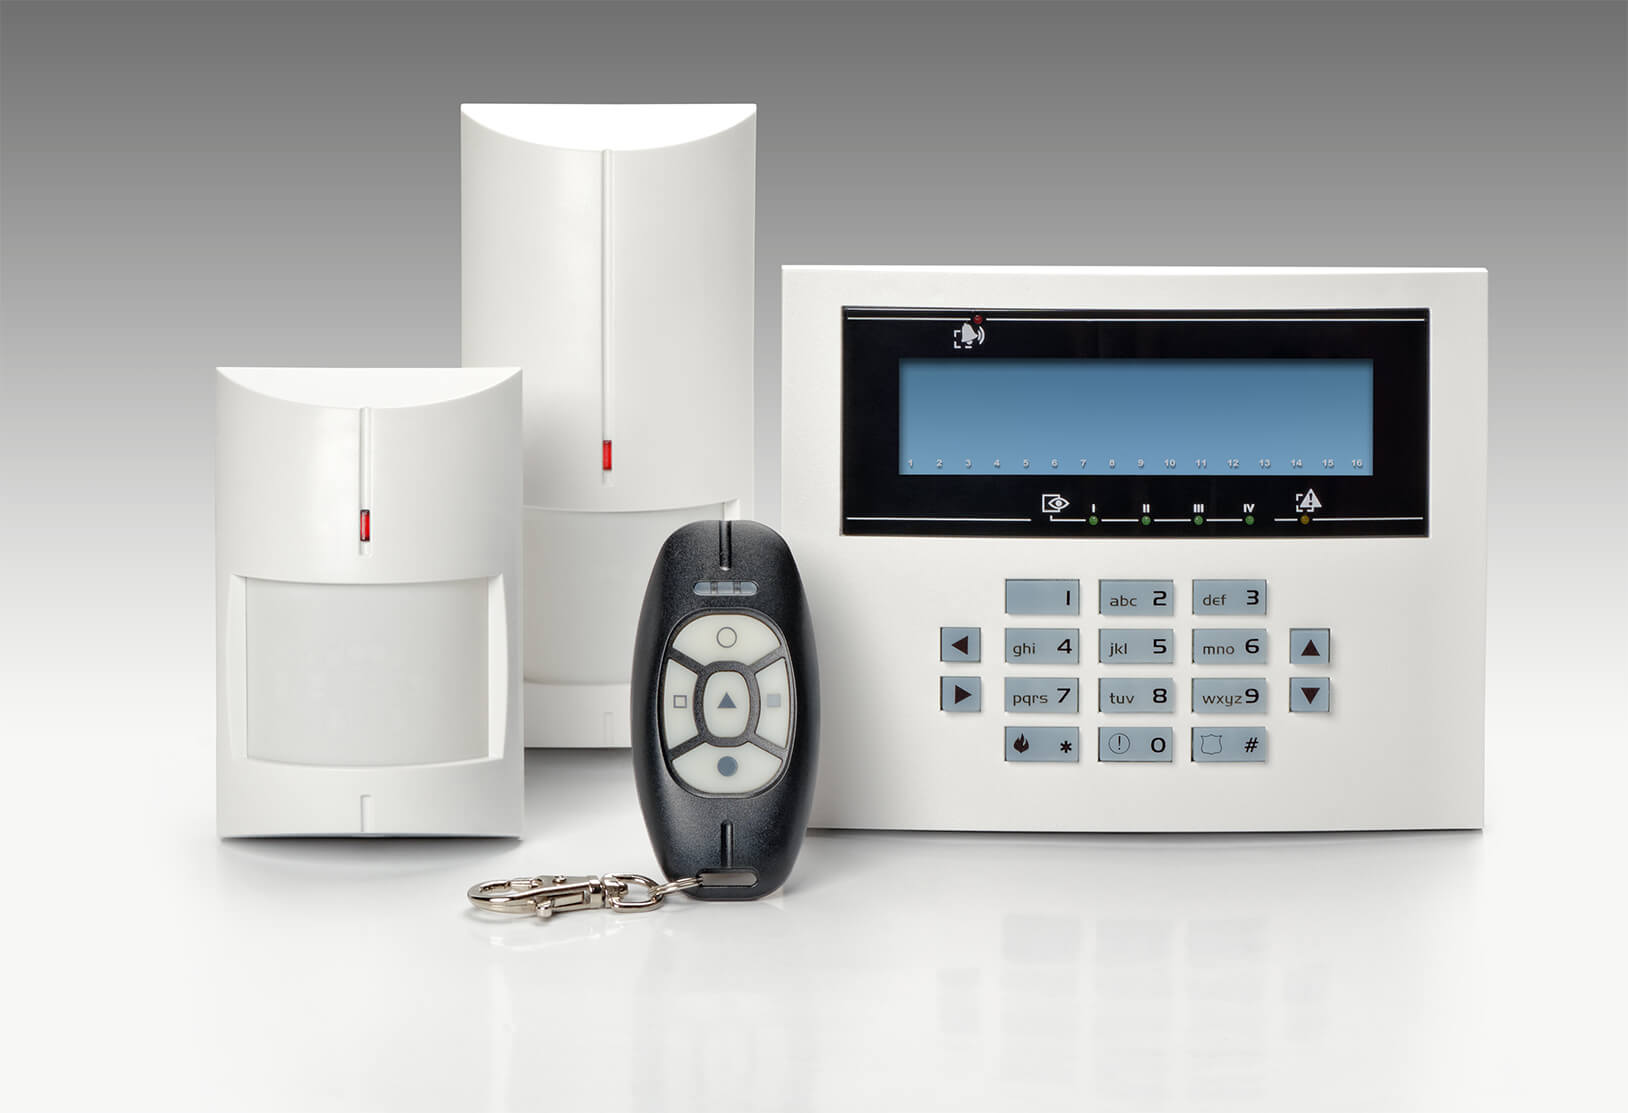 Business & Residential NACOSS Approved Burglar Alarms In Hammersmith W14 - Local Hammersmith W14 security company.Call 02078872244 - Dedicated to Safety & Security. Companies, shops and homes ..